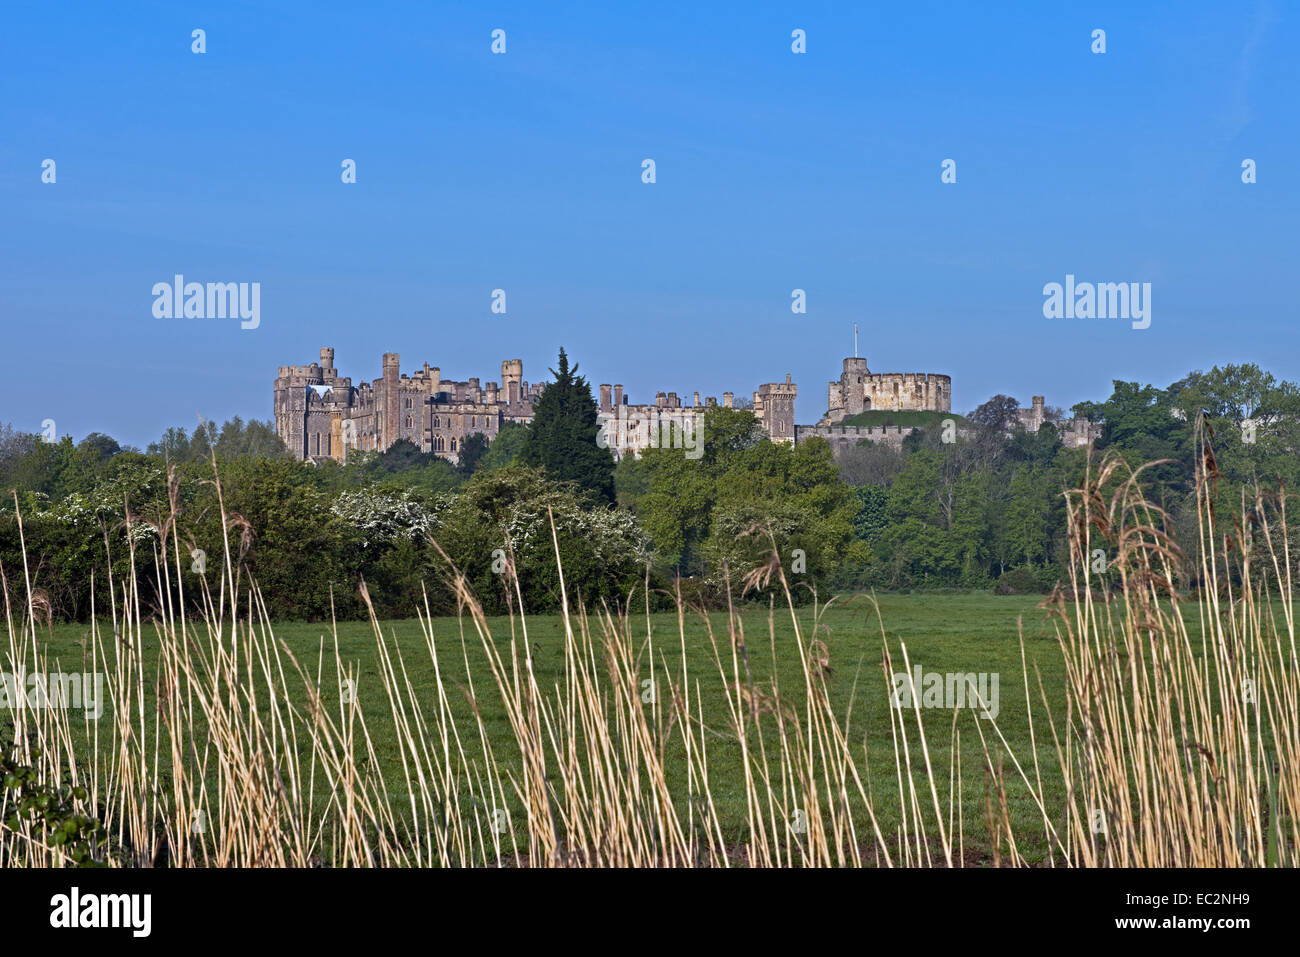 A Landscape View of Arundel Castle, West Sussex, England, Uk. - Stock Image